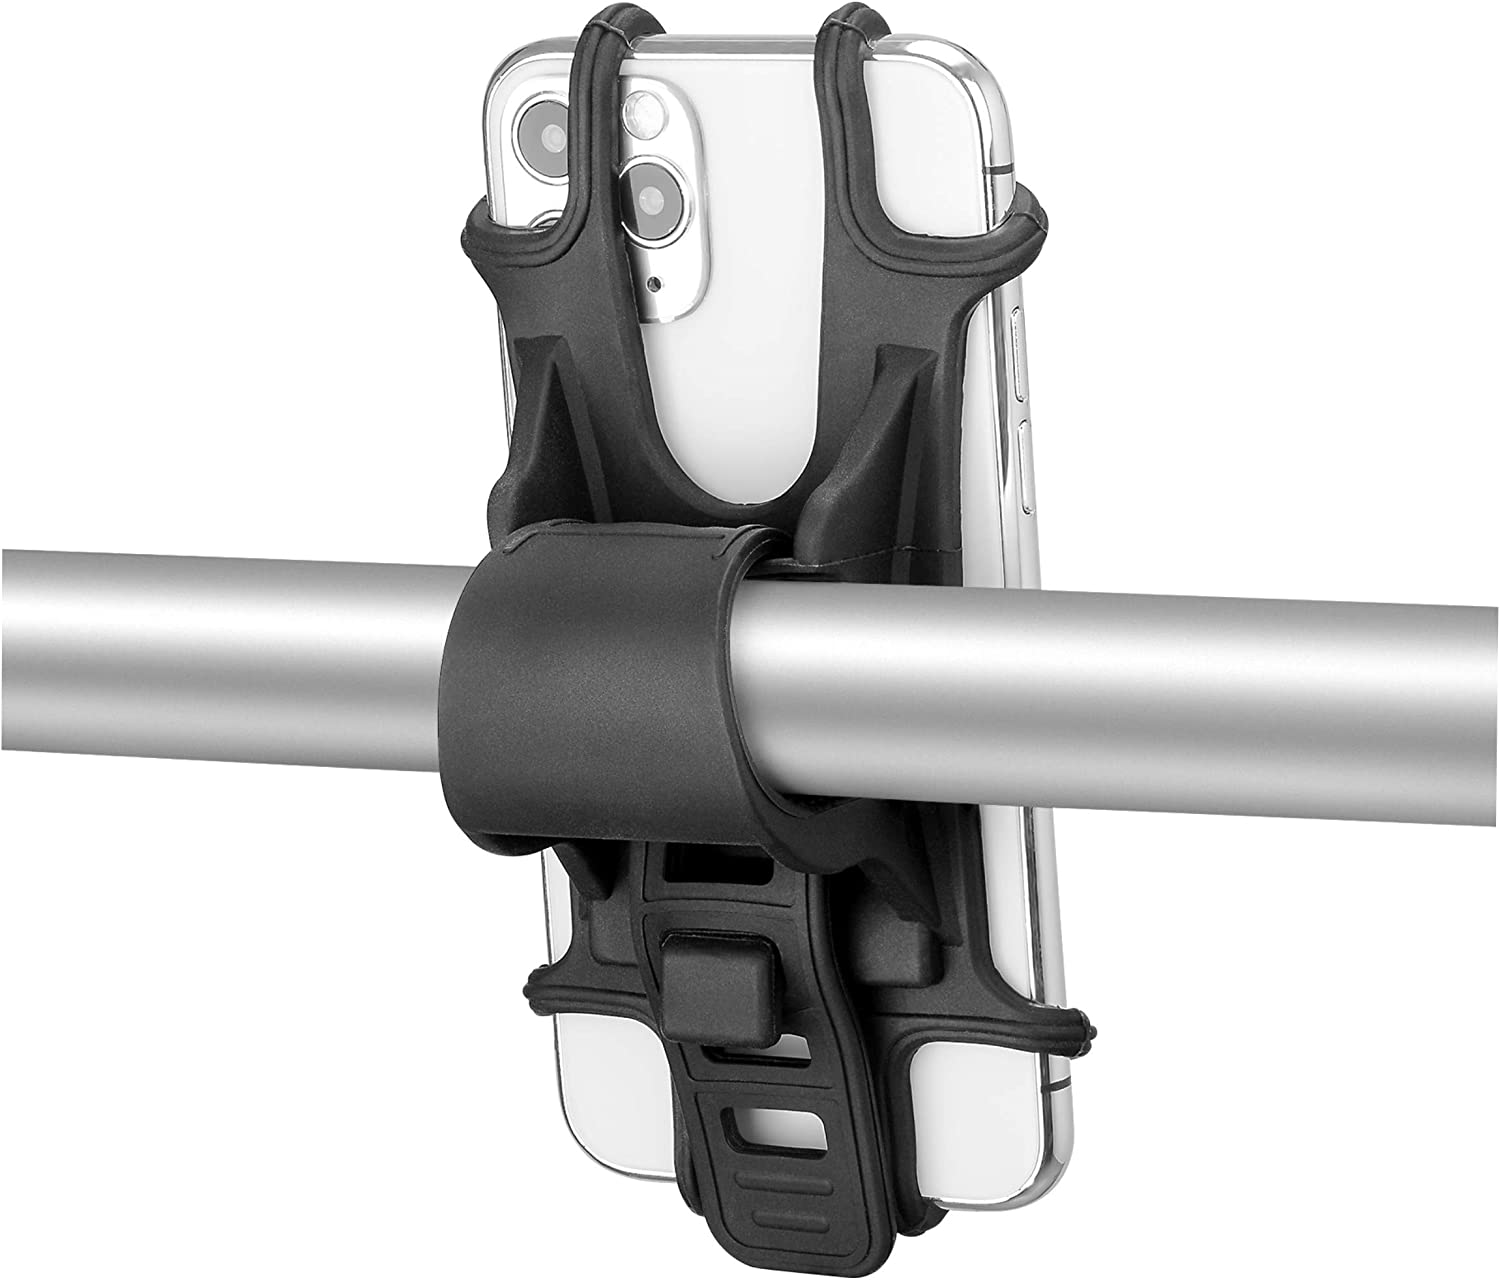 Stationary Bike Phone Mount Holder for iPhone 11 Pro/max/xr/xs Max / 8/7 / 6 / 6s Plus - Phone Bike Mount Installed on Bicycles/Motorcycles/Strollers/Shopping Carts.